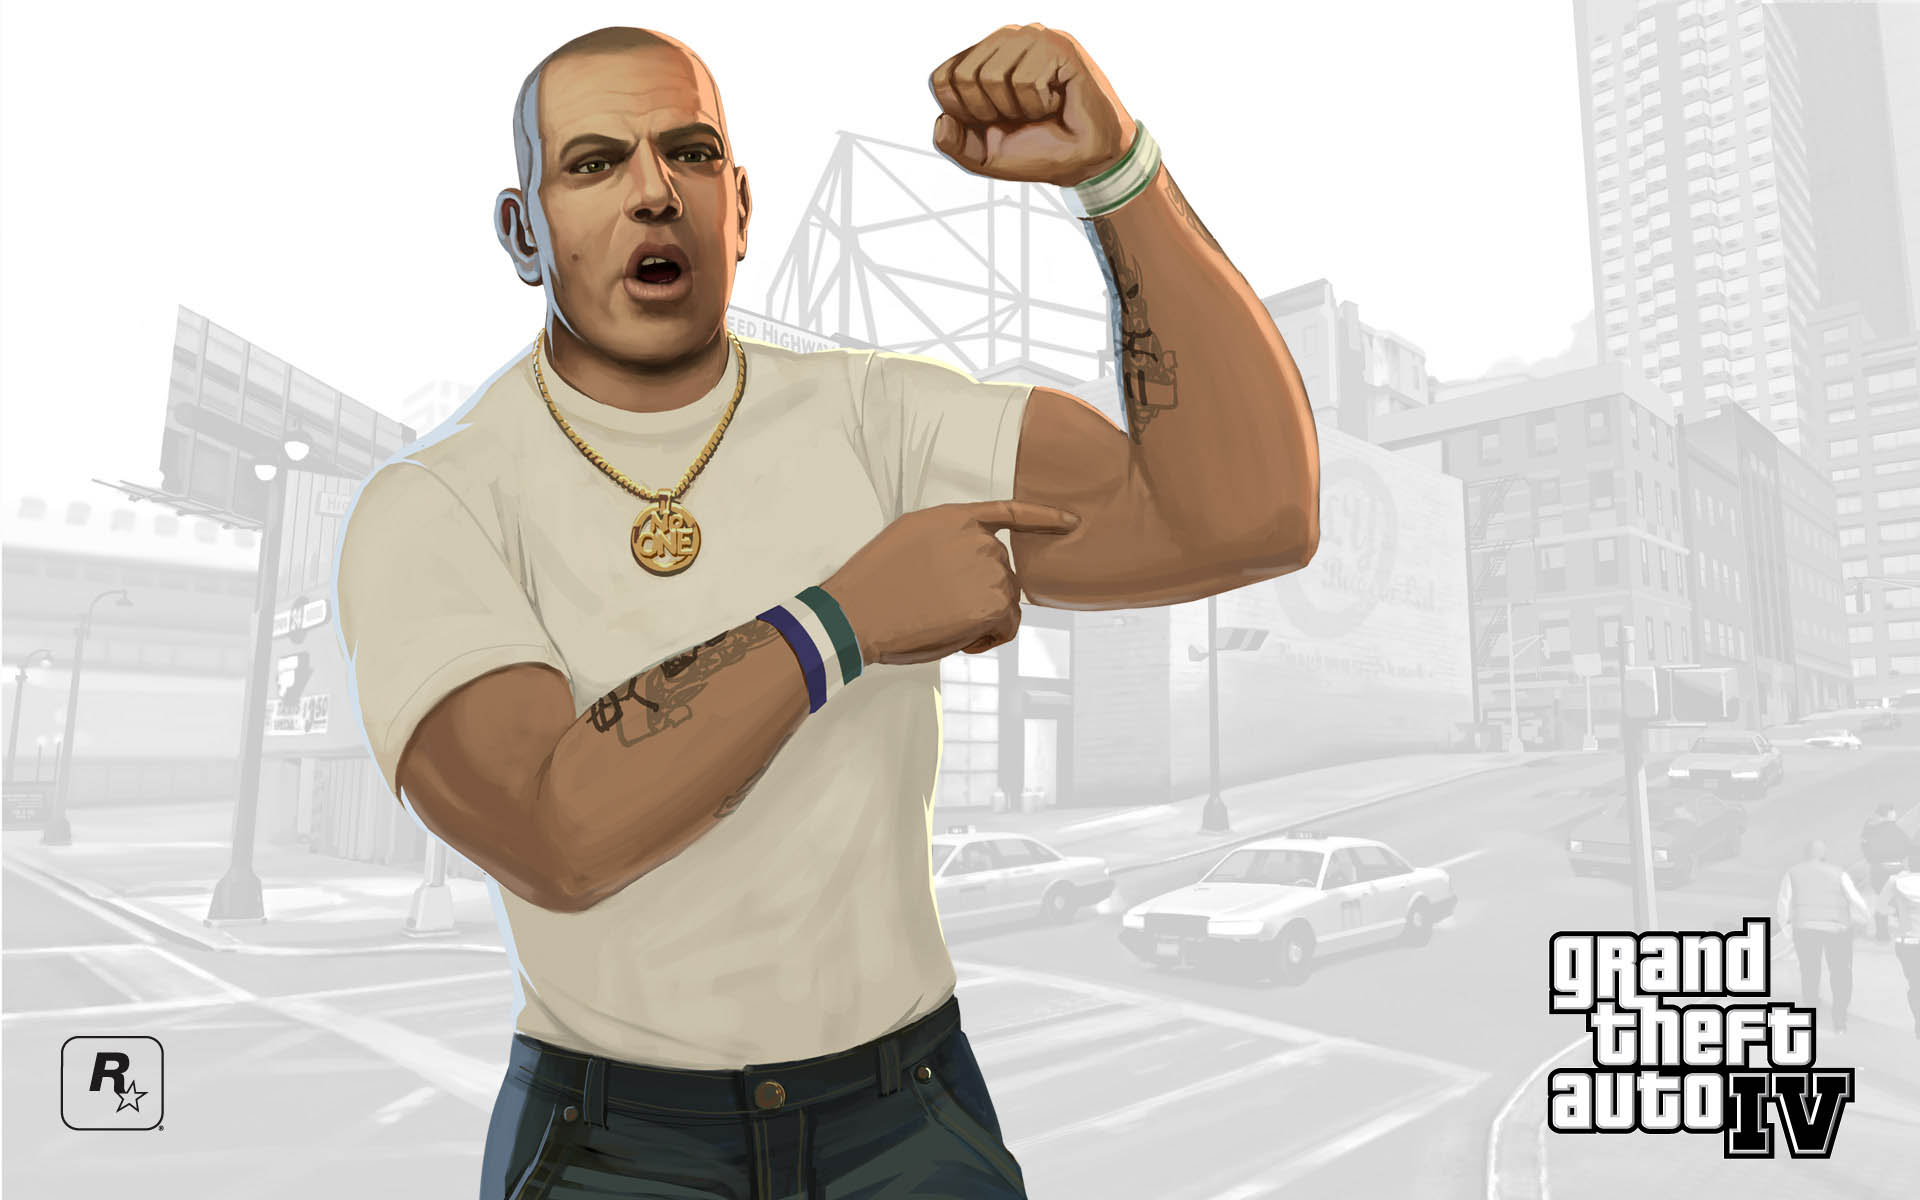 GTA_4_Wallpapers